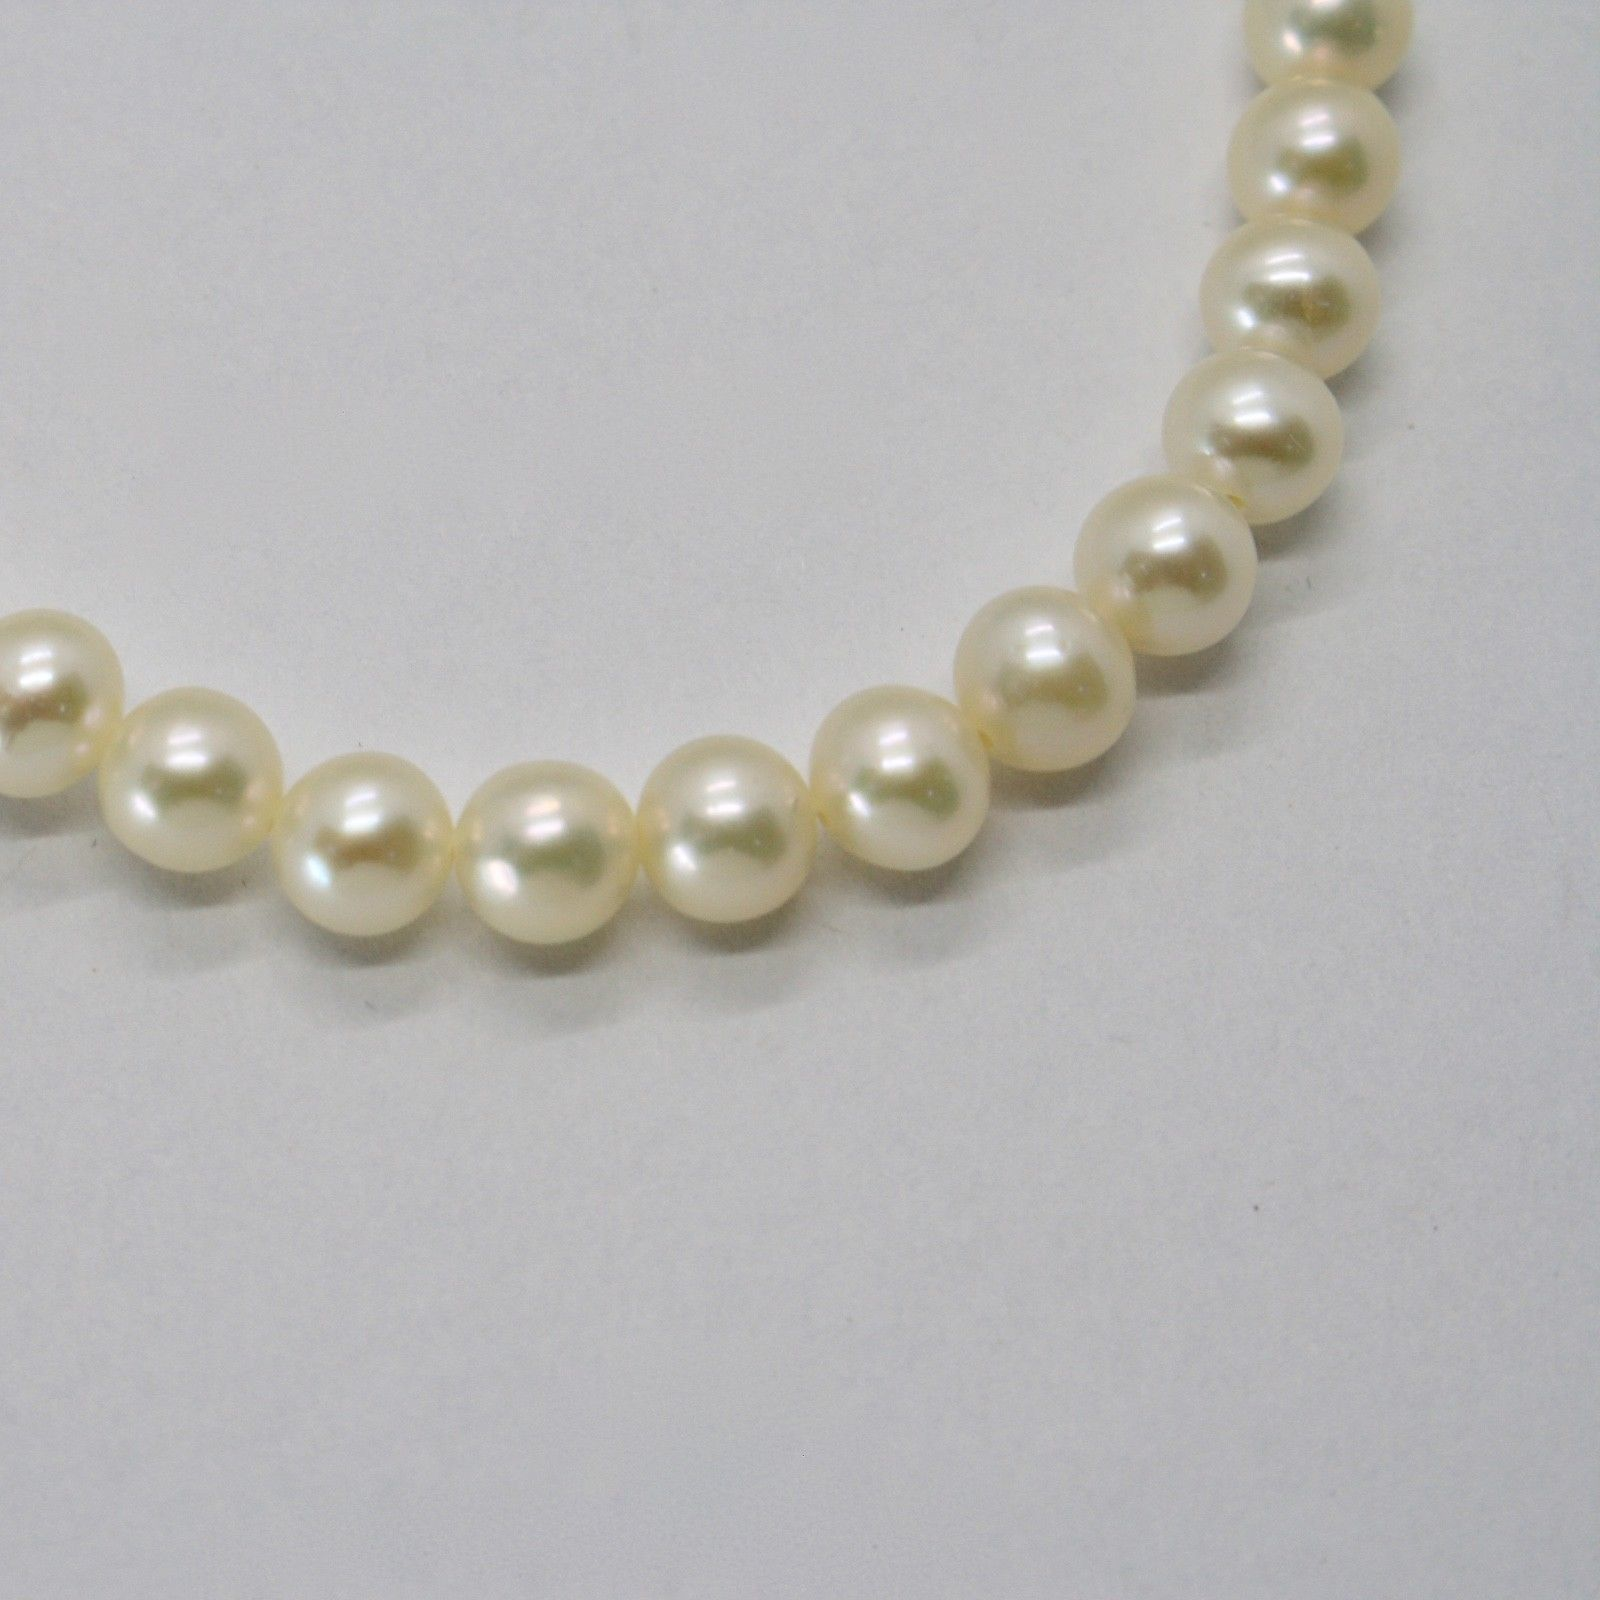 White Gold Bracelet 18KT and Silver 925 with Pearls 5.5 6 mm Beautiful Box